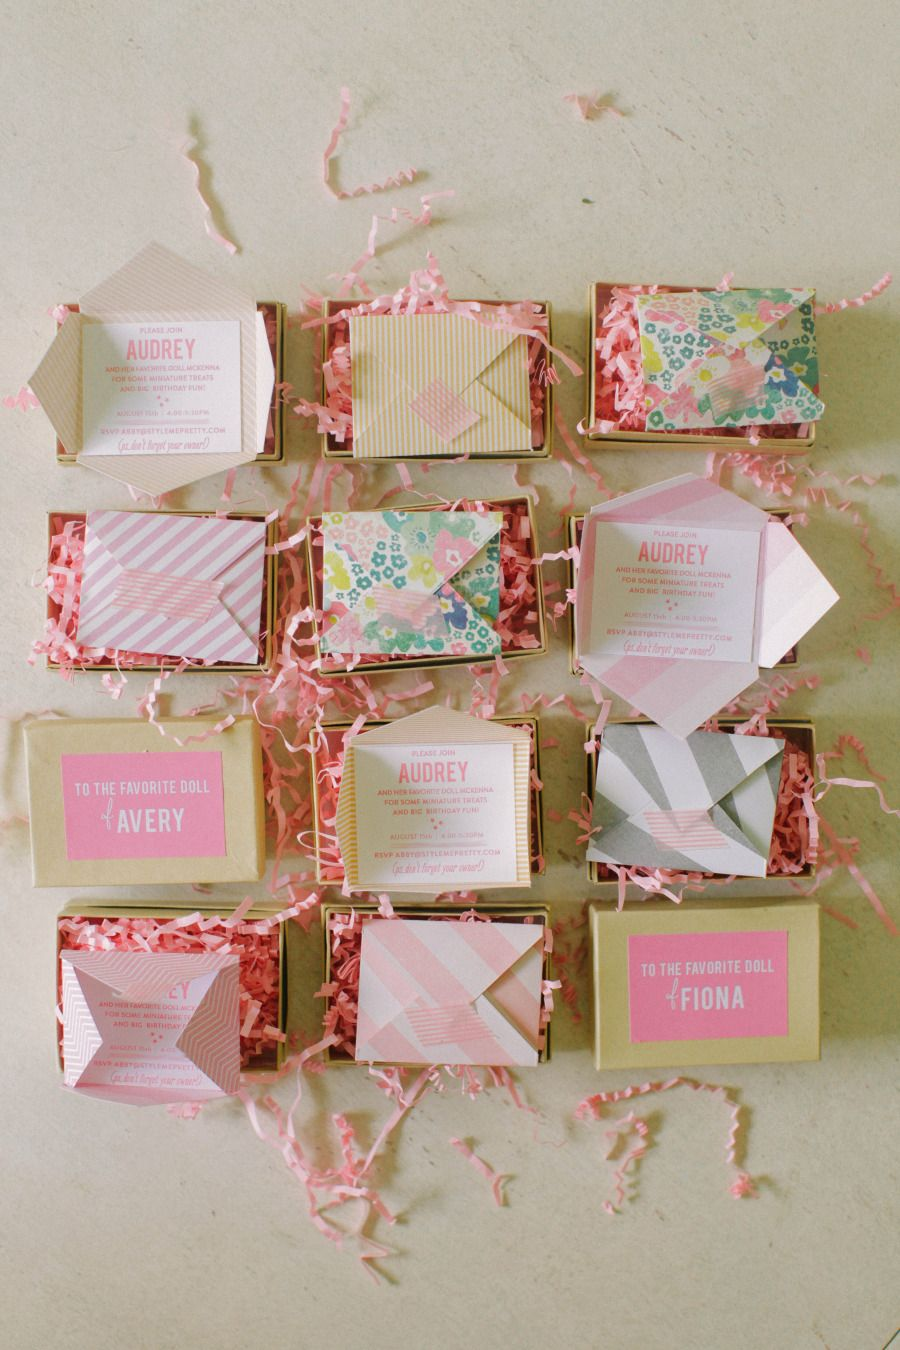 22 Of The Most Creative Party Invitations EVER | Party invitations ...